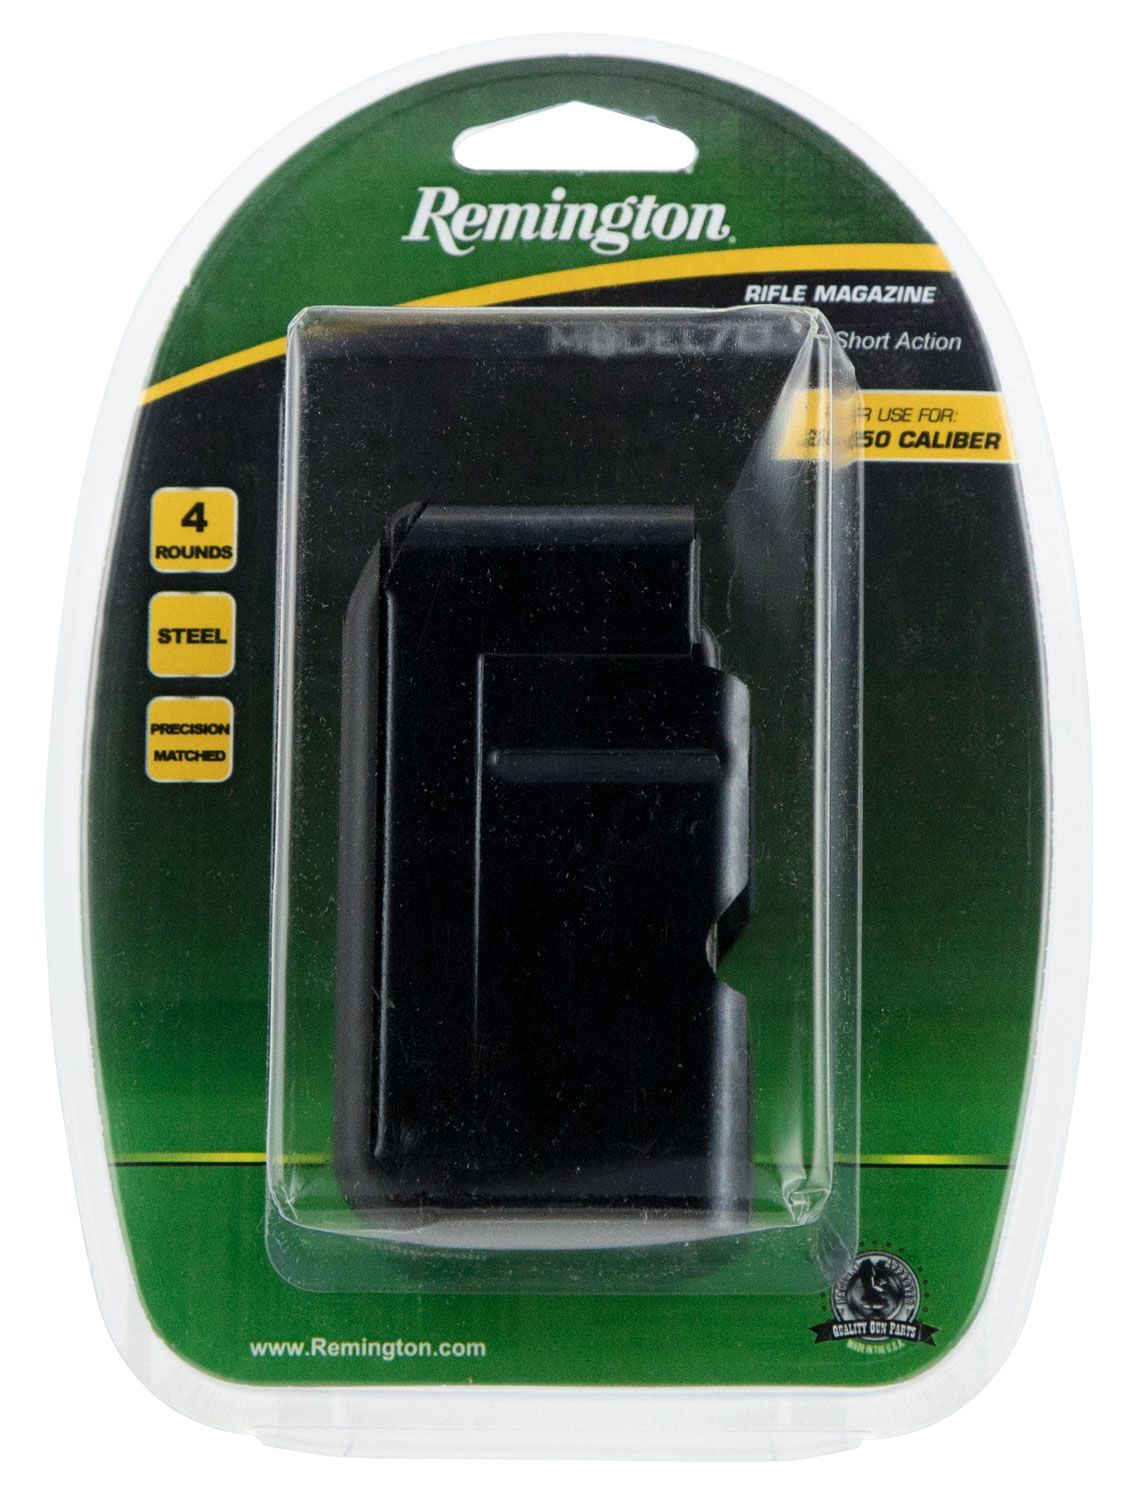 Remington 783 22-250 4-Round Short Action Magazine